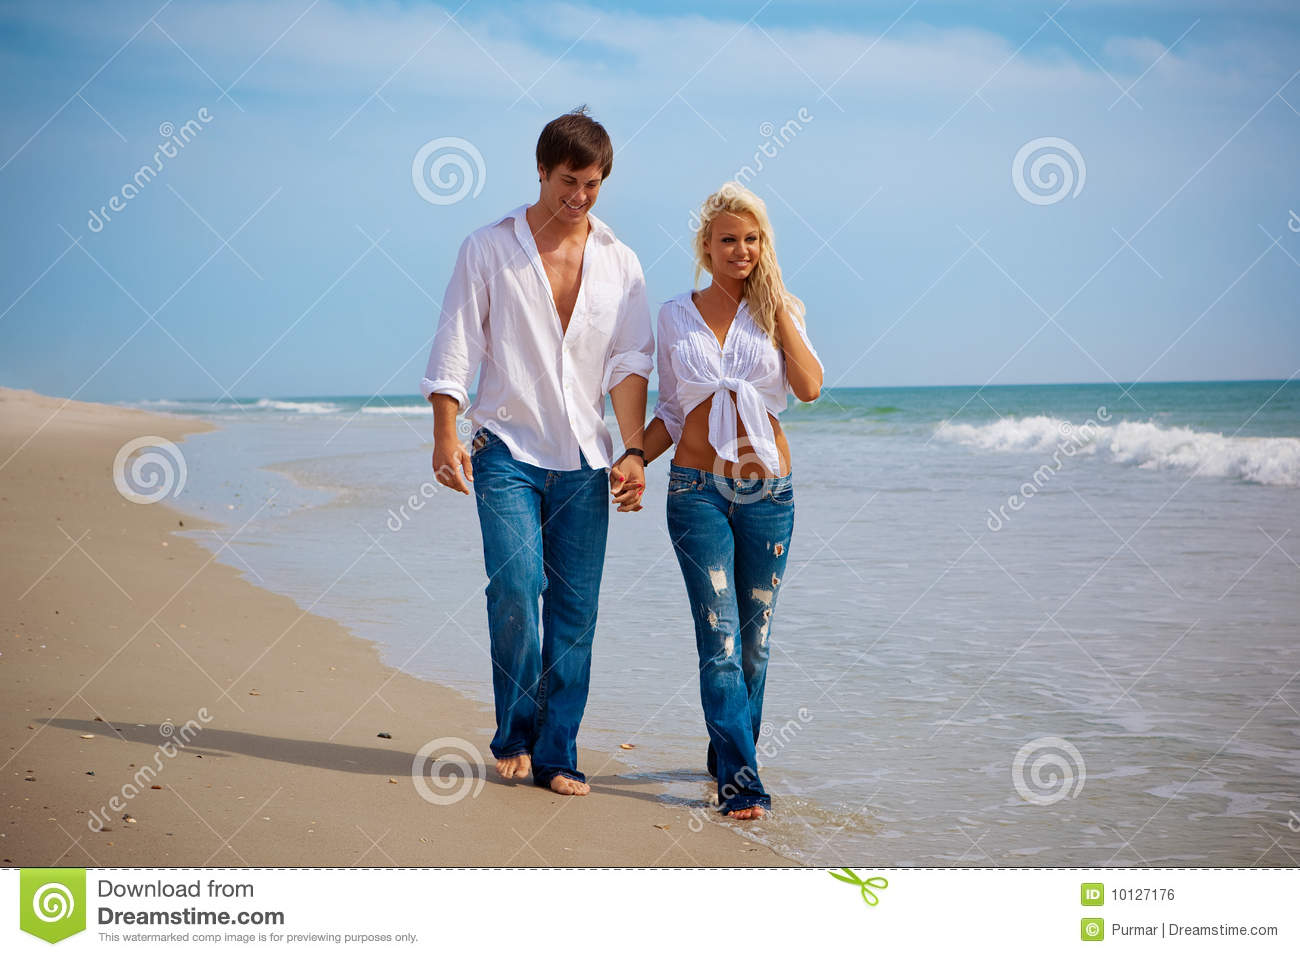 https://thumbs.dreamstime.com/z/happy-young-couple-beach-10127176.jpg